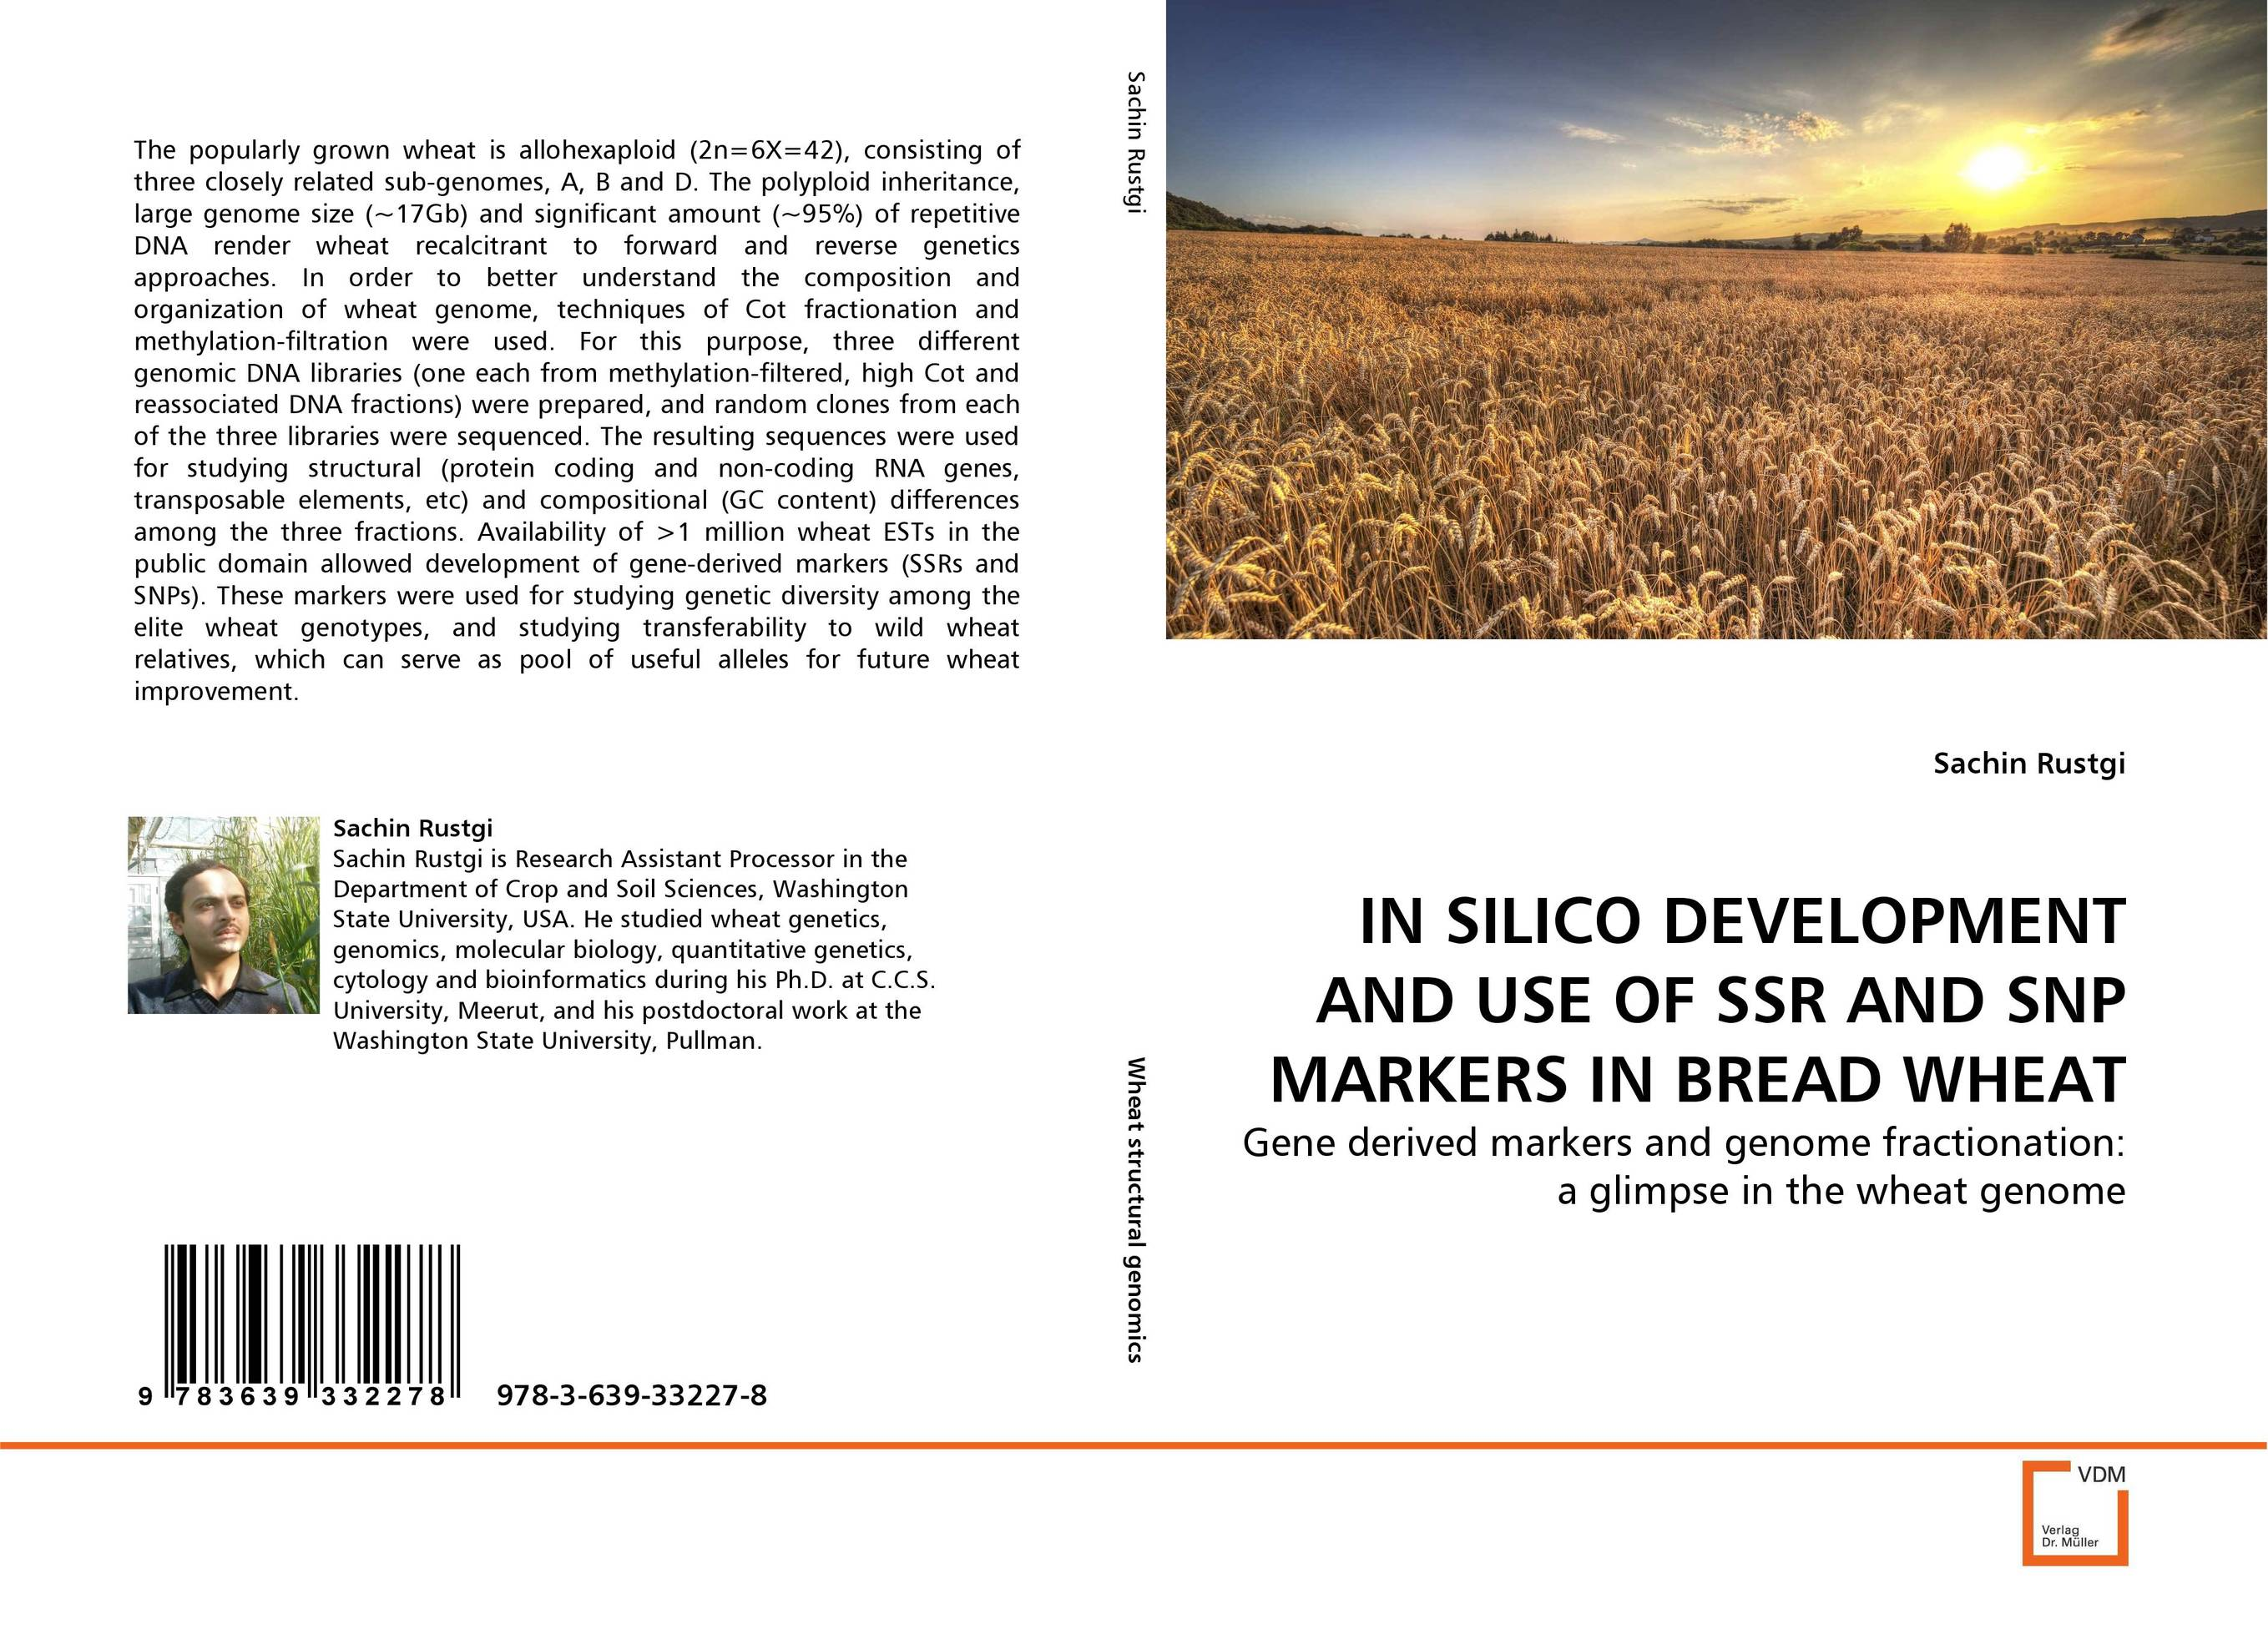 IN SILICO DEVELOPMENT AND USE OF SSR AND SNP MARKERS IN BREAD WHEAT purnima sareen sundeep kumar and rakesh singh molecular and pathological characterization of slow rusting in wheat